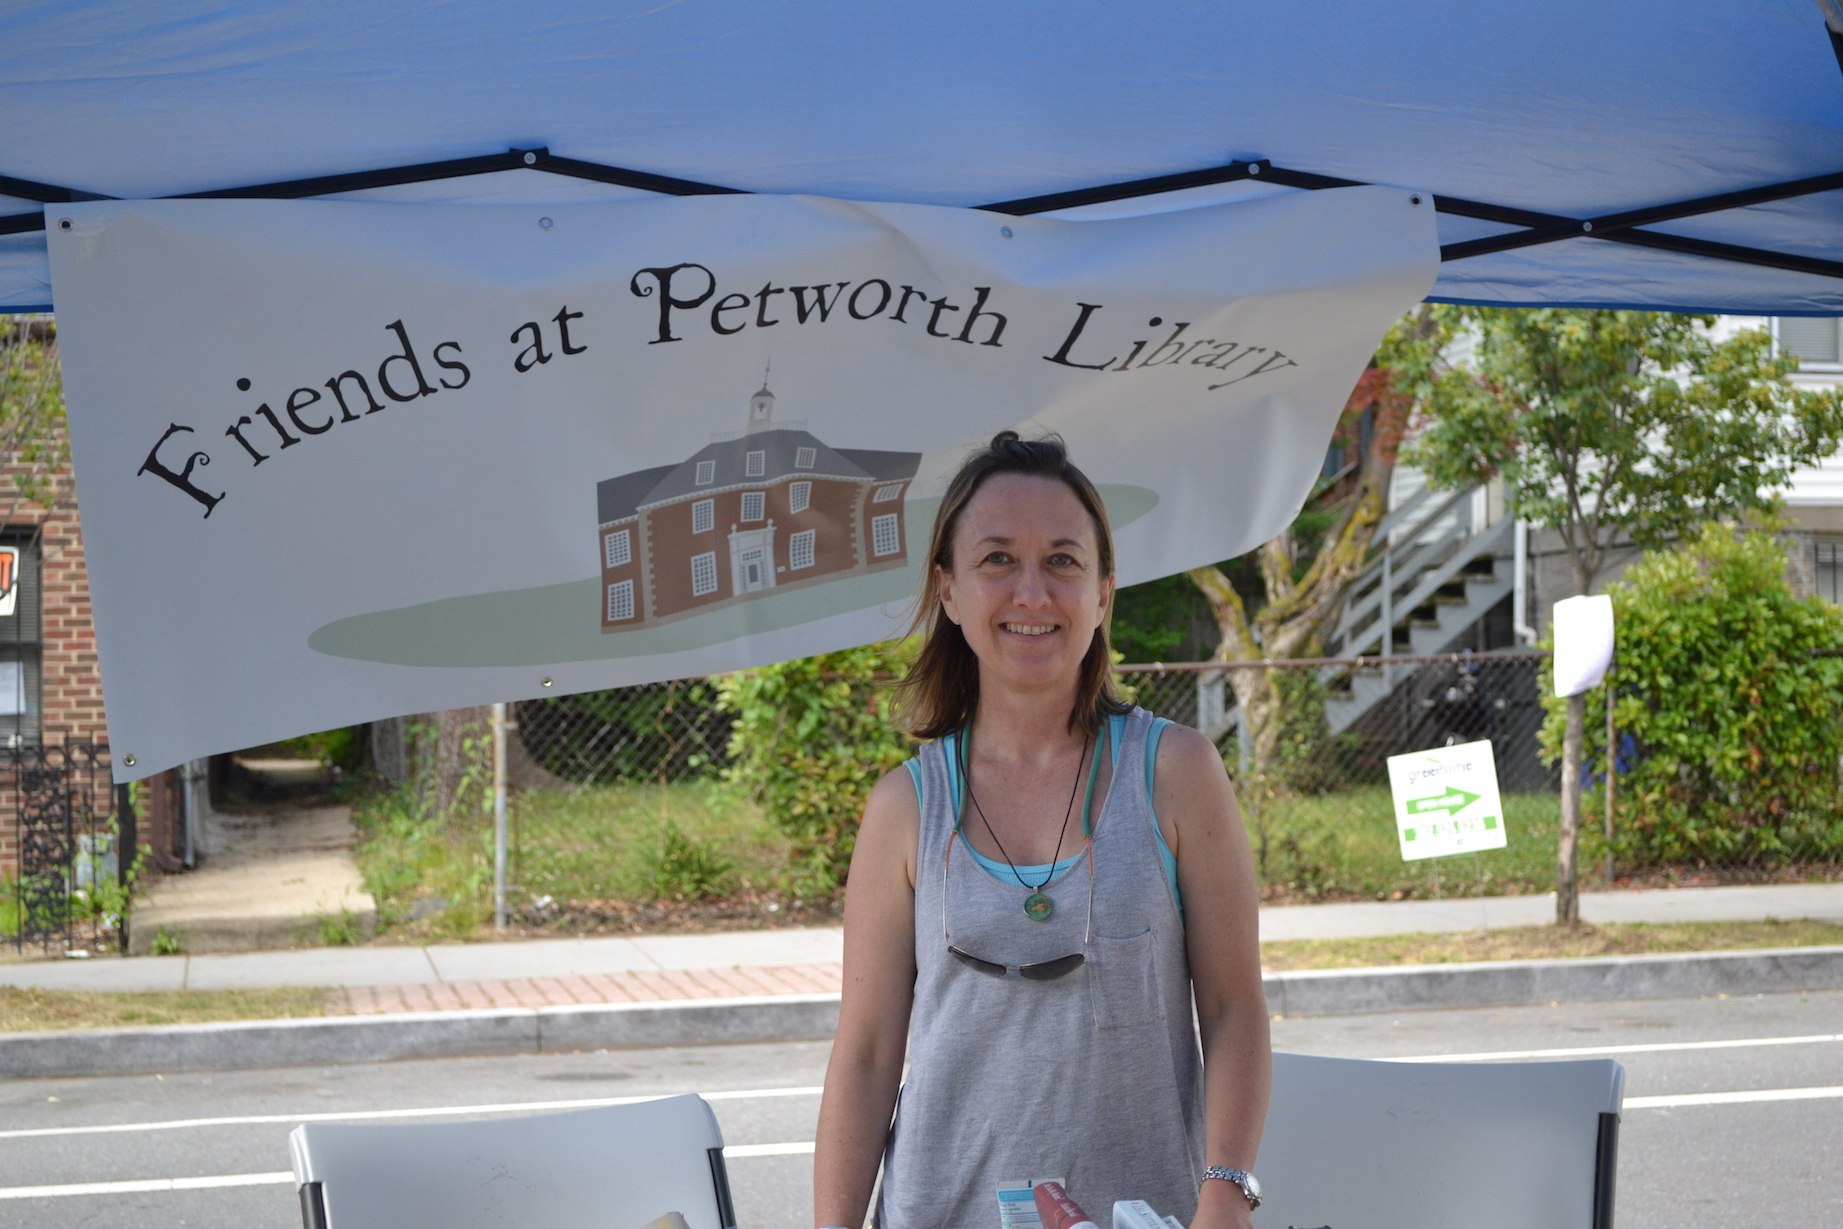 Kay Kuhlman from the Friends at the Petworth Library.